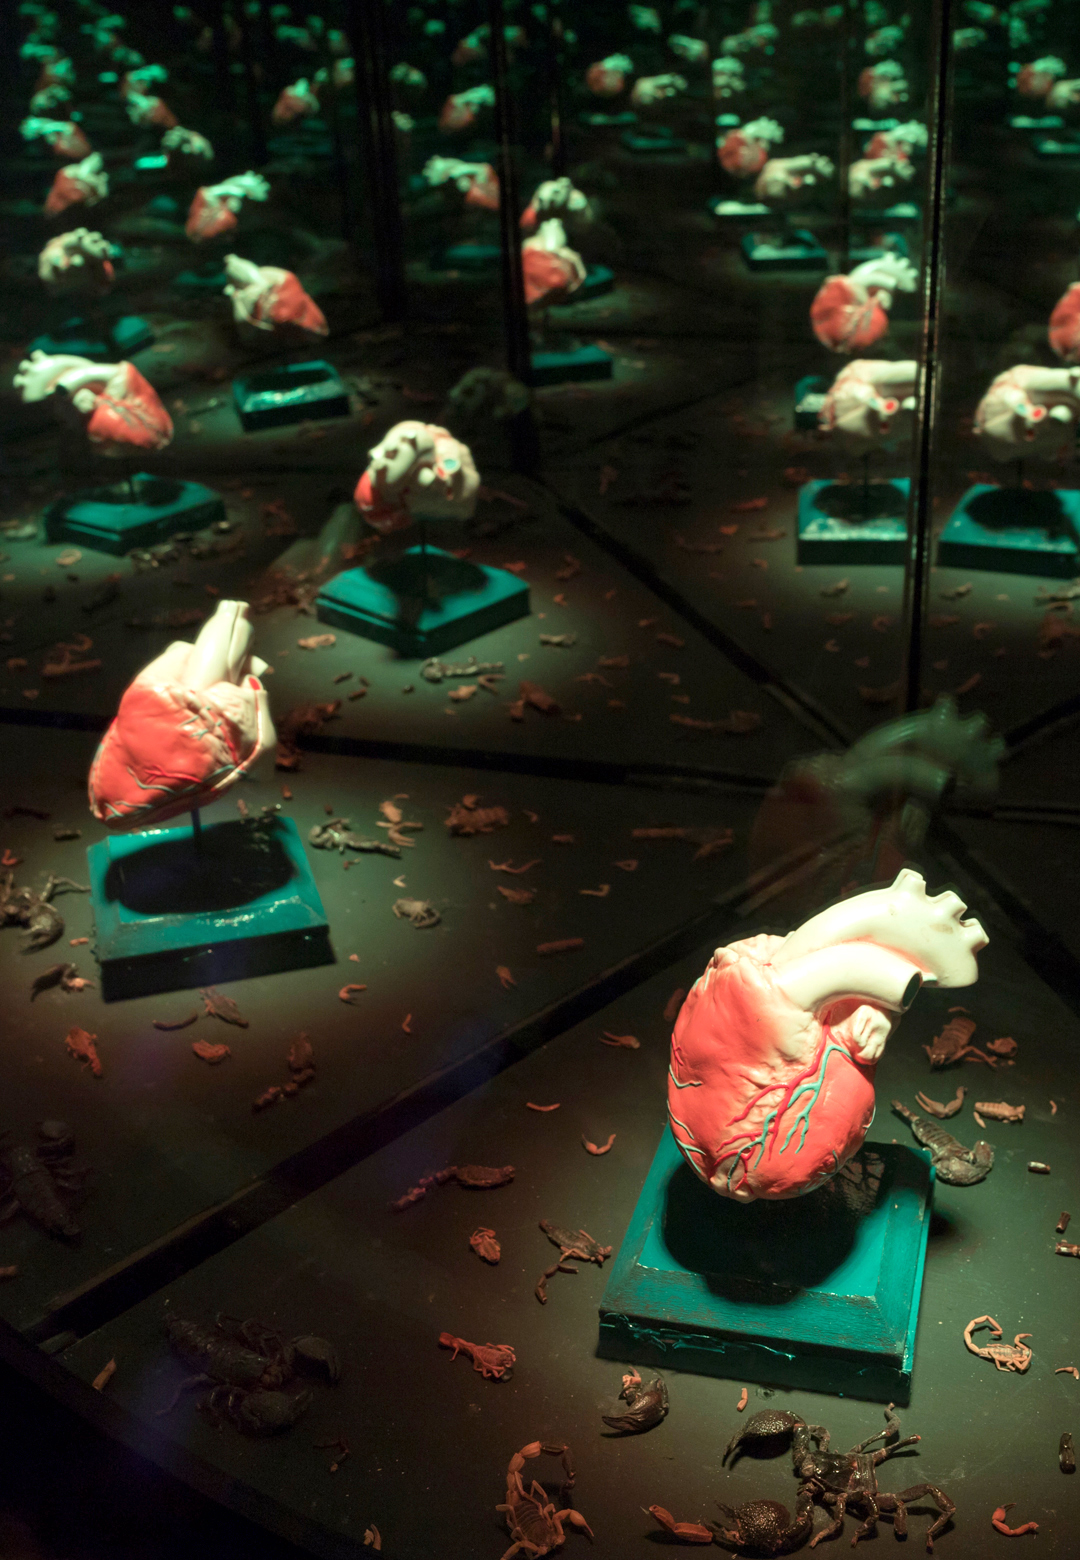 Art and entertainment collective Meow Wolf has gained popularity as one of the most visited art exhibits across the world   Meow Wolf   STIRworld